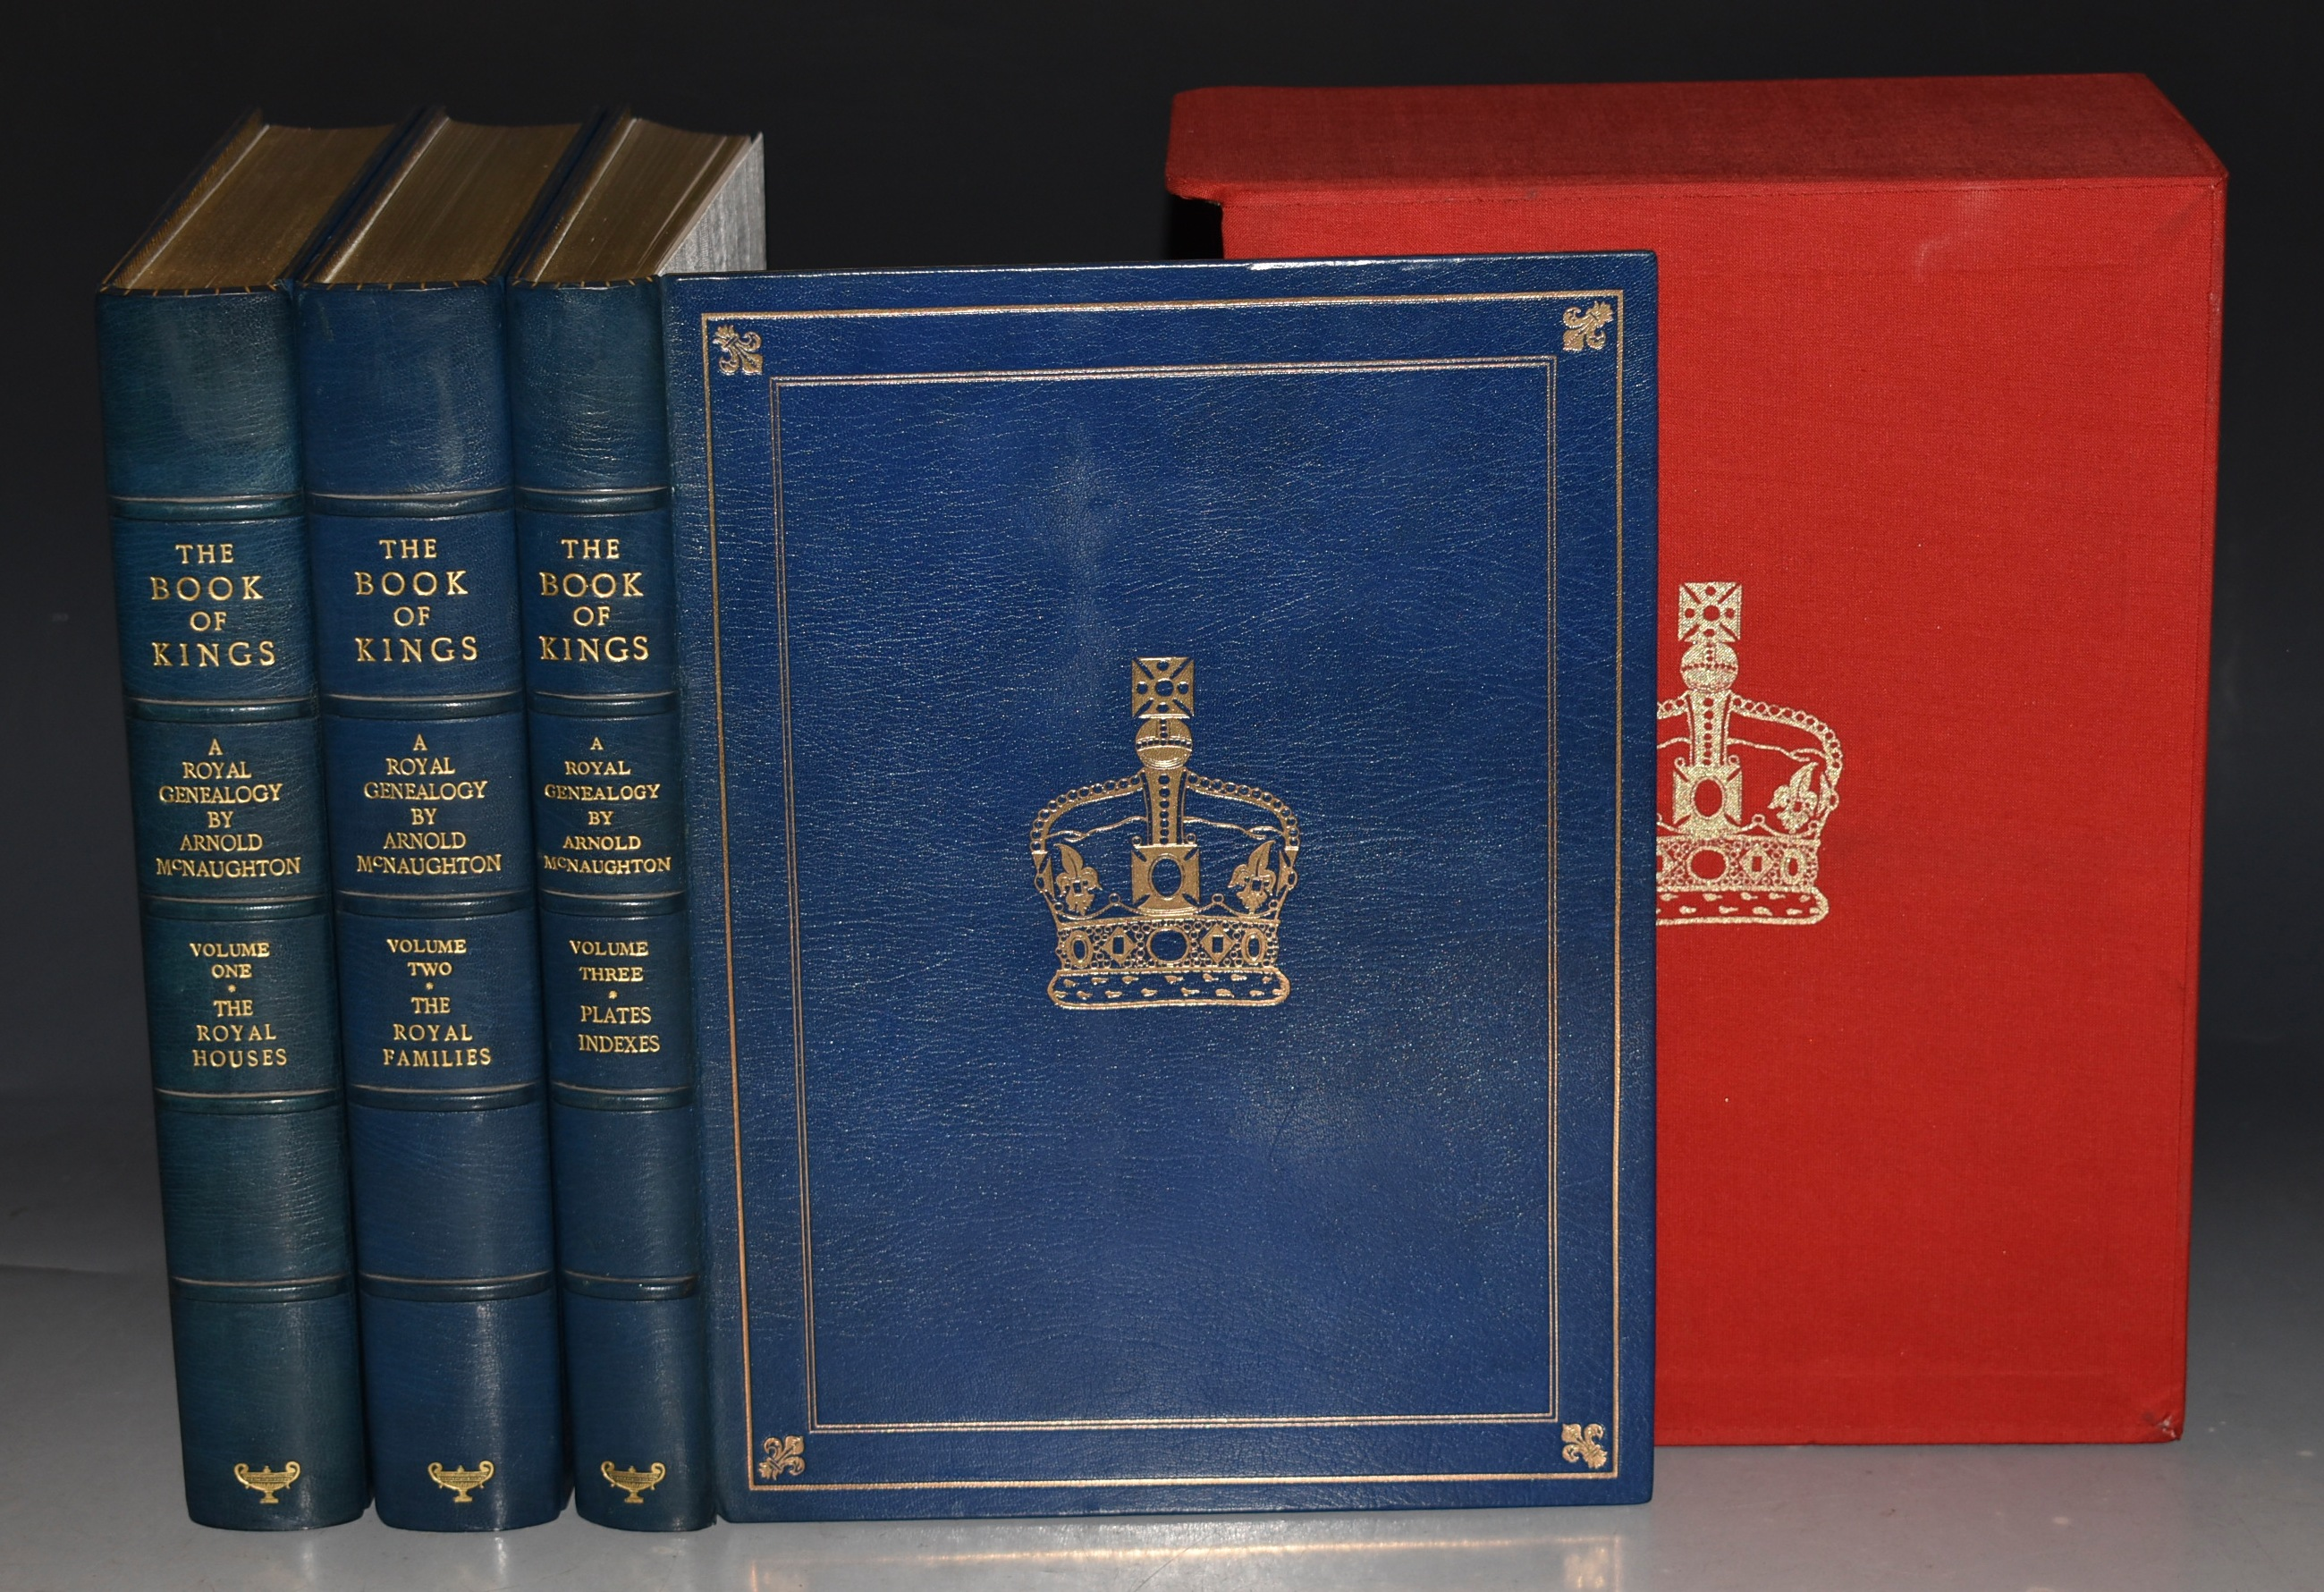 Image for The Book of Kings; A Royal Genealogy. SIGNED Limited Numbered Edition. In Three Volumes.